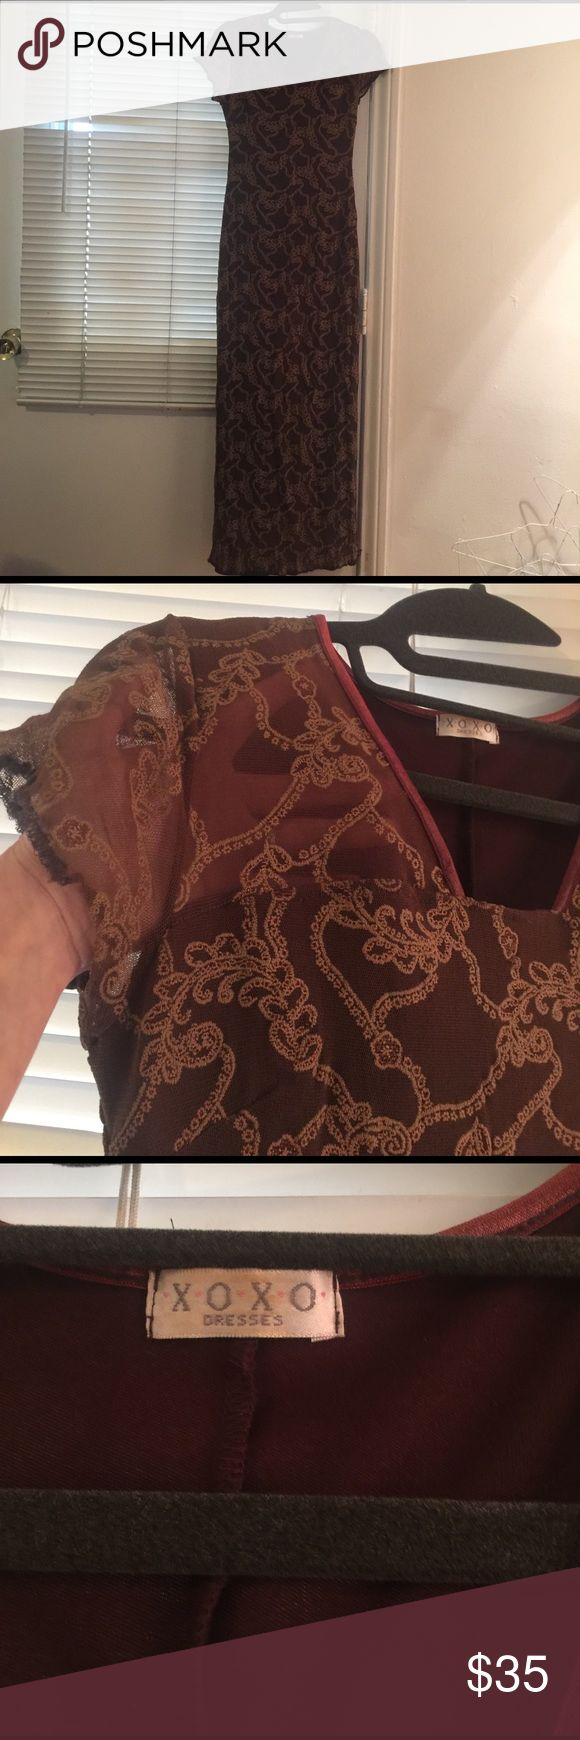 Simple, elegant, comfortable long parry dress! Dark brown, embroiled with tan and a little gold threads, very cute, súper comfy long gown that adapts to your body, cotton stretchy fabric. NEVER WORN. Price is firm. No low ball offers please! XOXO Dresses Maxi